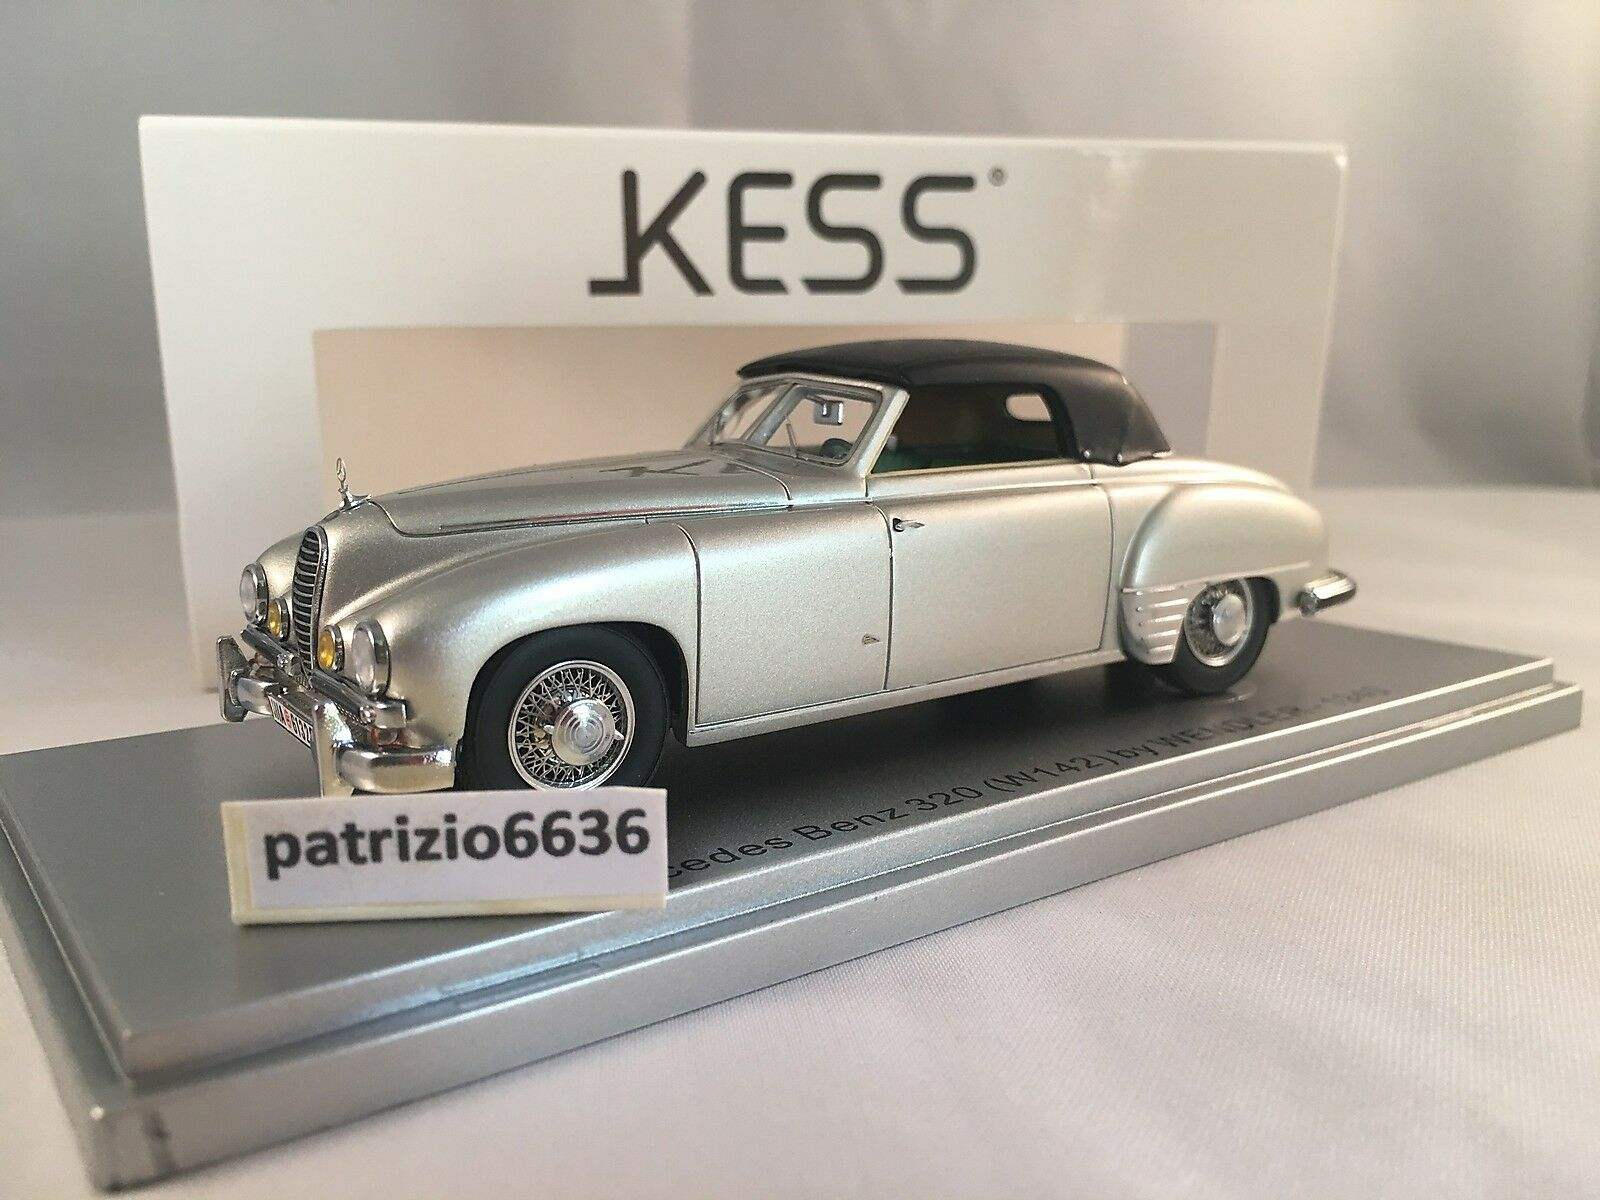 KESS MODEL 1 43 Mercedes Benz 320 Wendler Cabriolet Closed 1940 Art. KE43037001